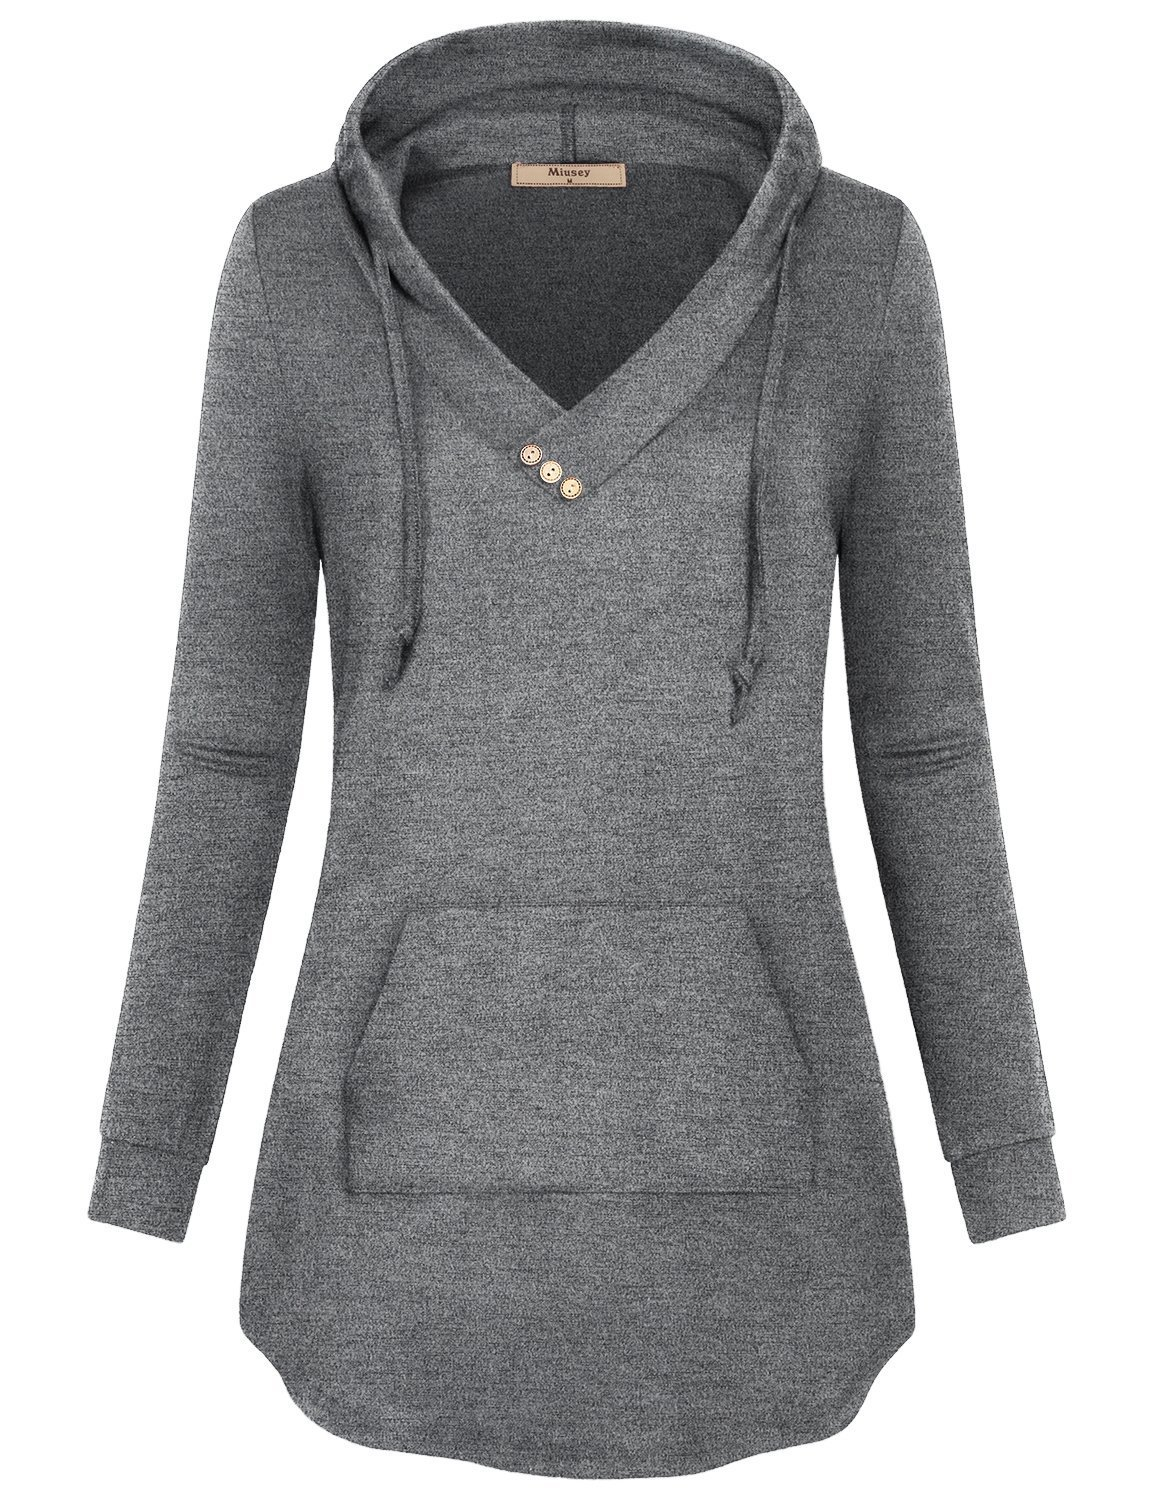 Miusey Women Hoody Shirts,Juniors Crossover Top Sweaters with Button Trim Soft Surroundings Classic Knit Plain Semi-Thin Casual Business Wear for Fall Light Grey L